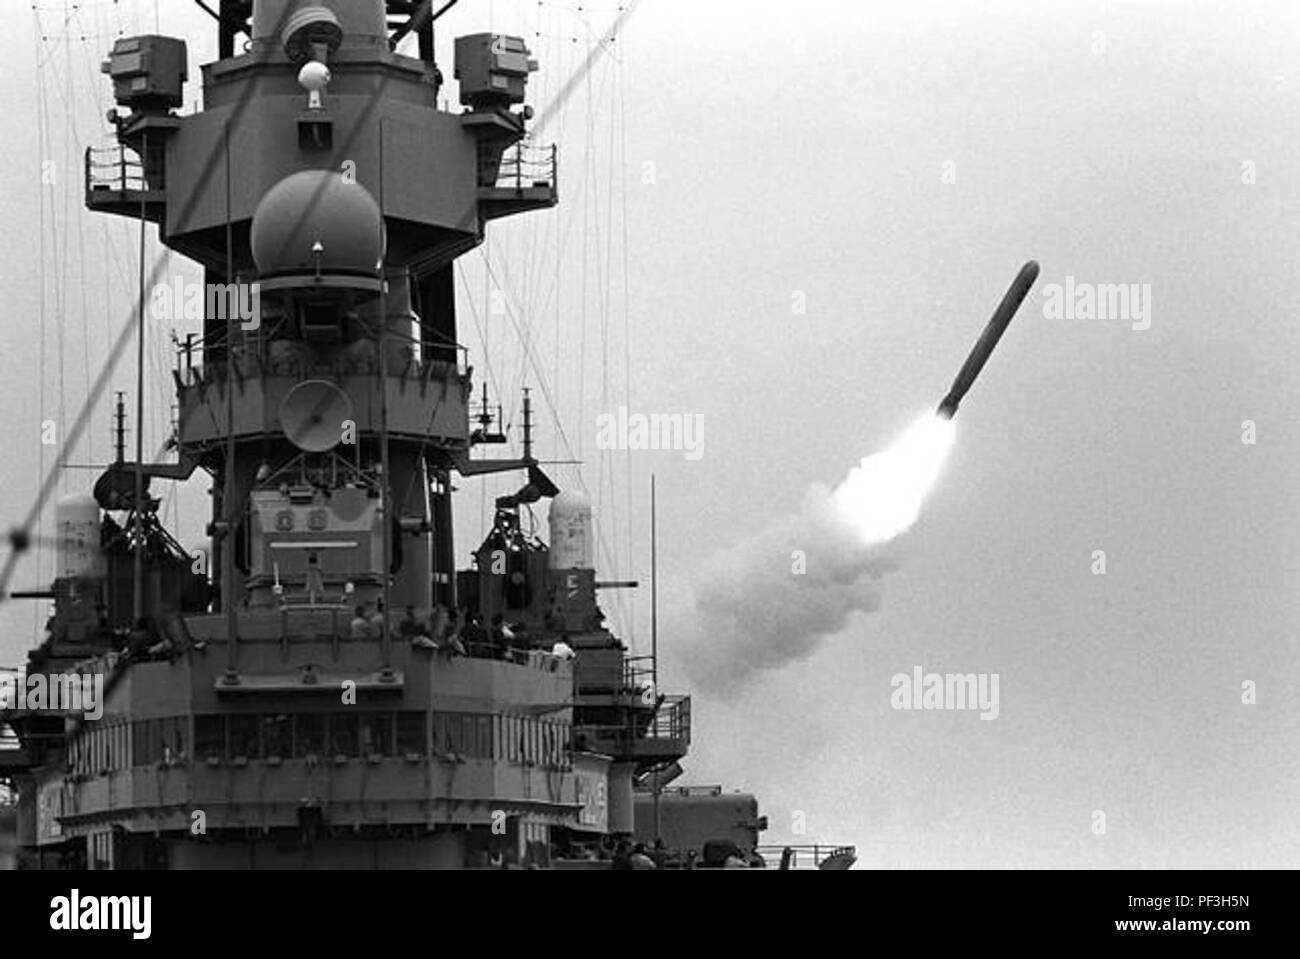 USS Missouri launches a Tomahawk missile during Operation Desert Storm. - Stock Image